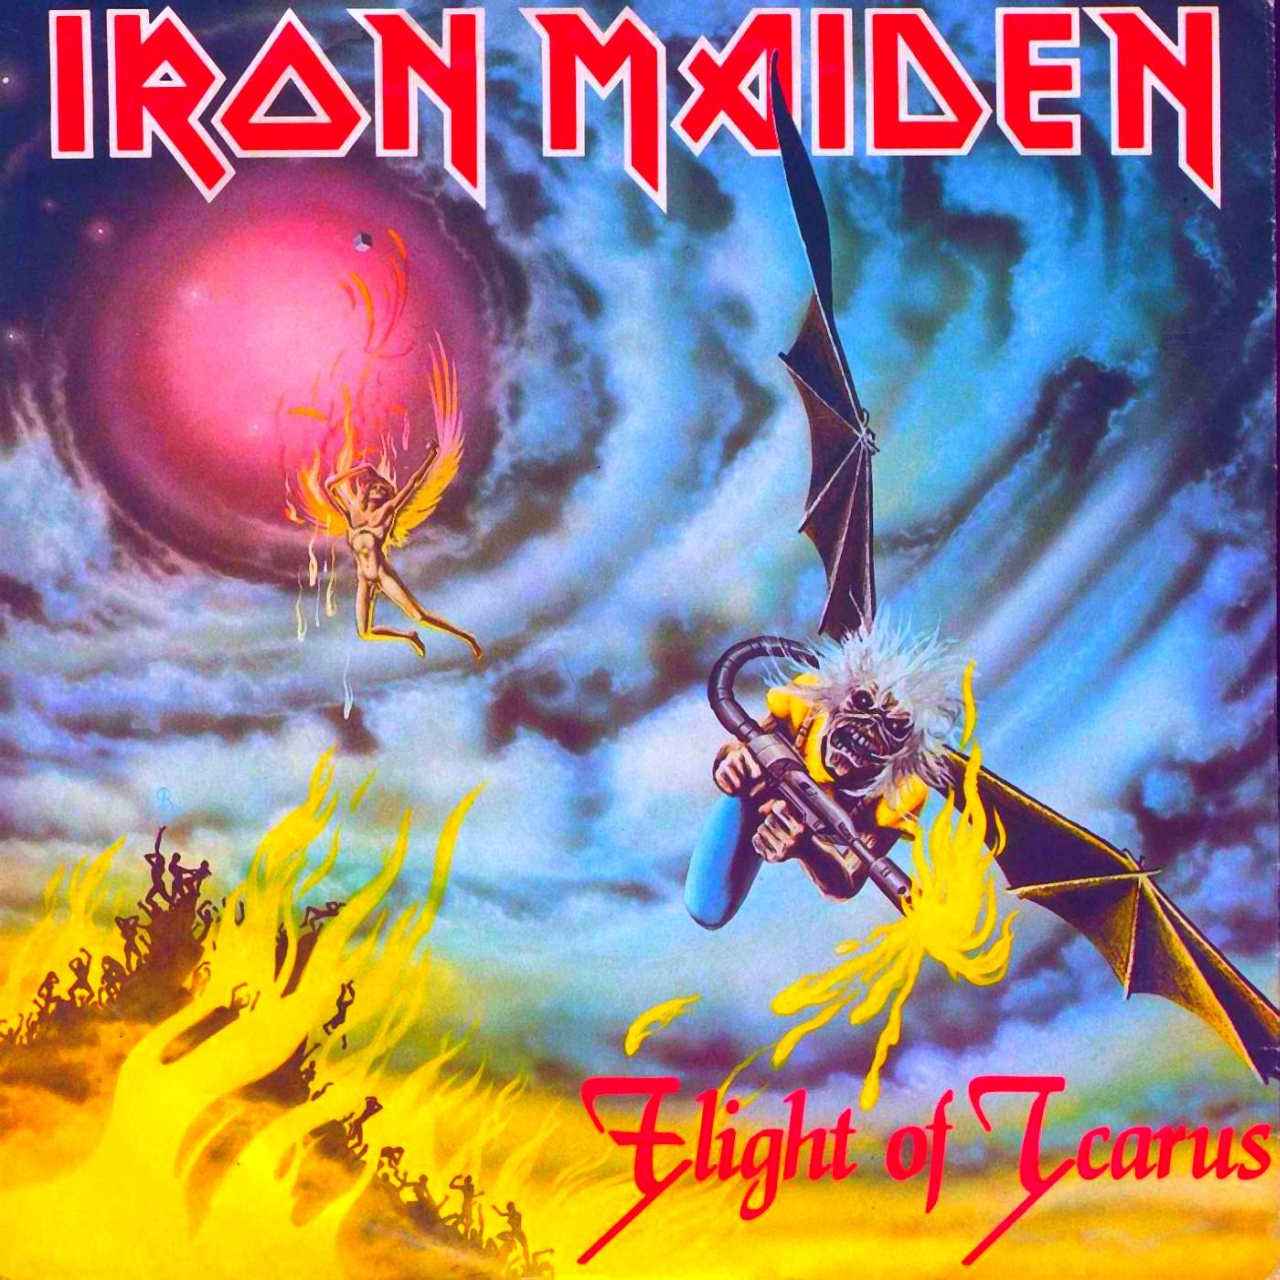 letra de la cancion iron maiden: